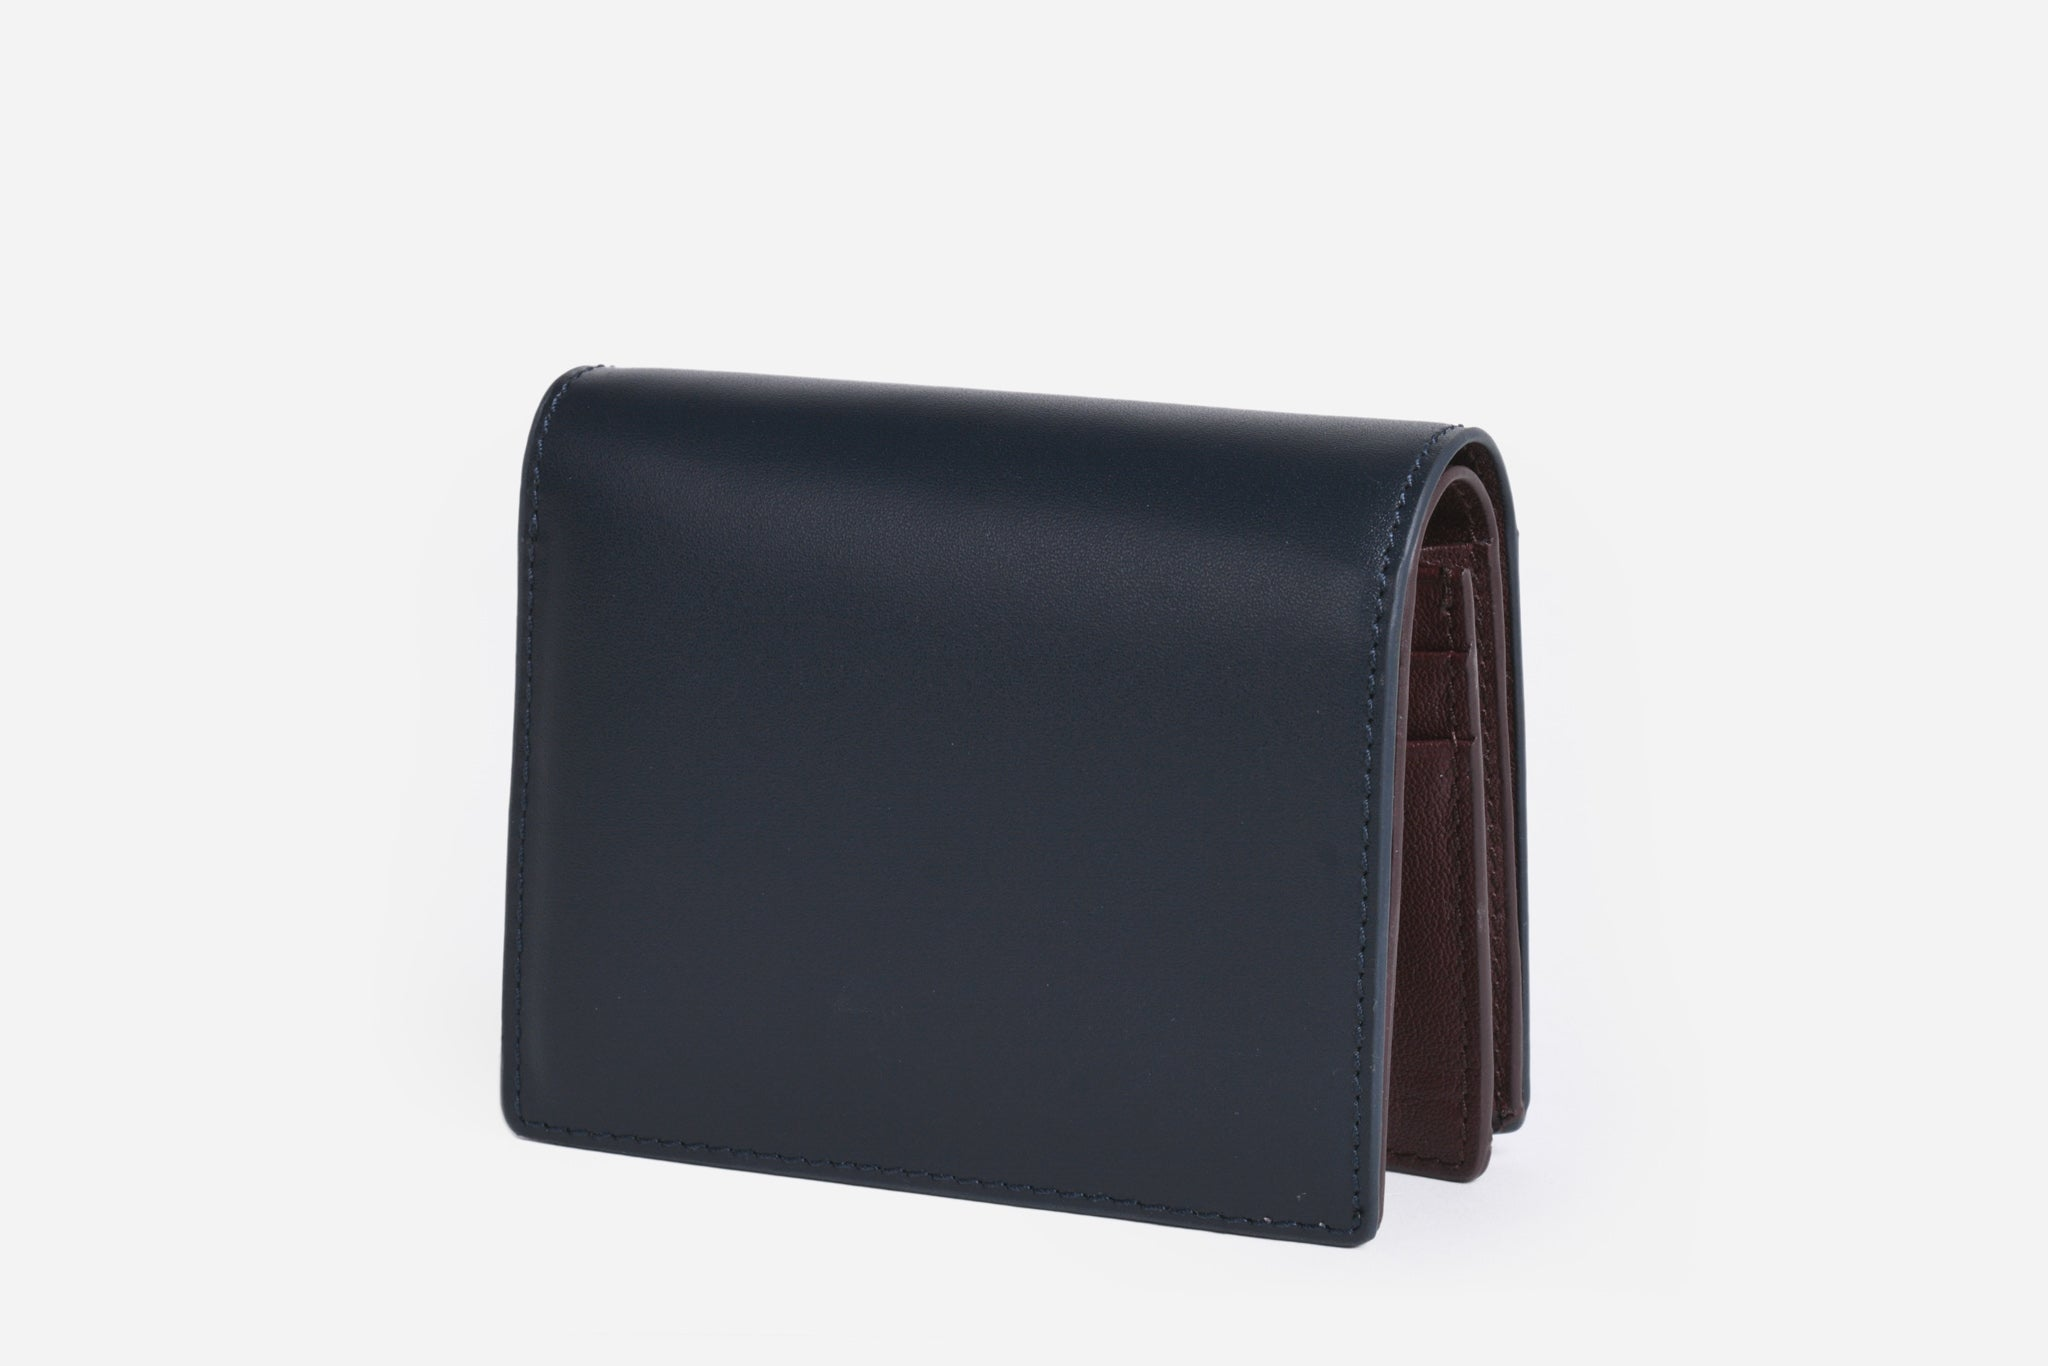 Specter Bifold Wallet with Cardholder